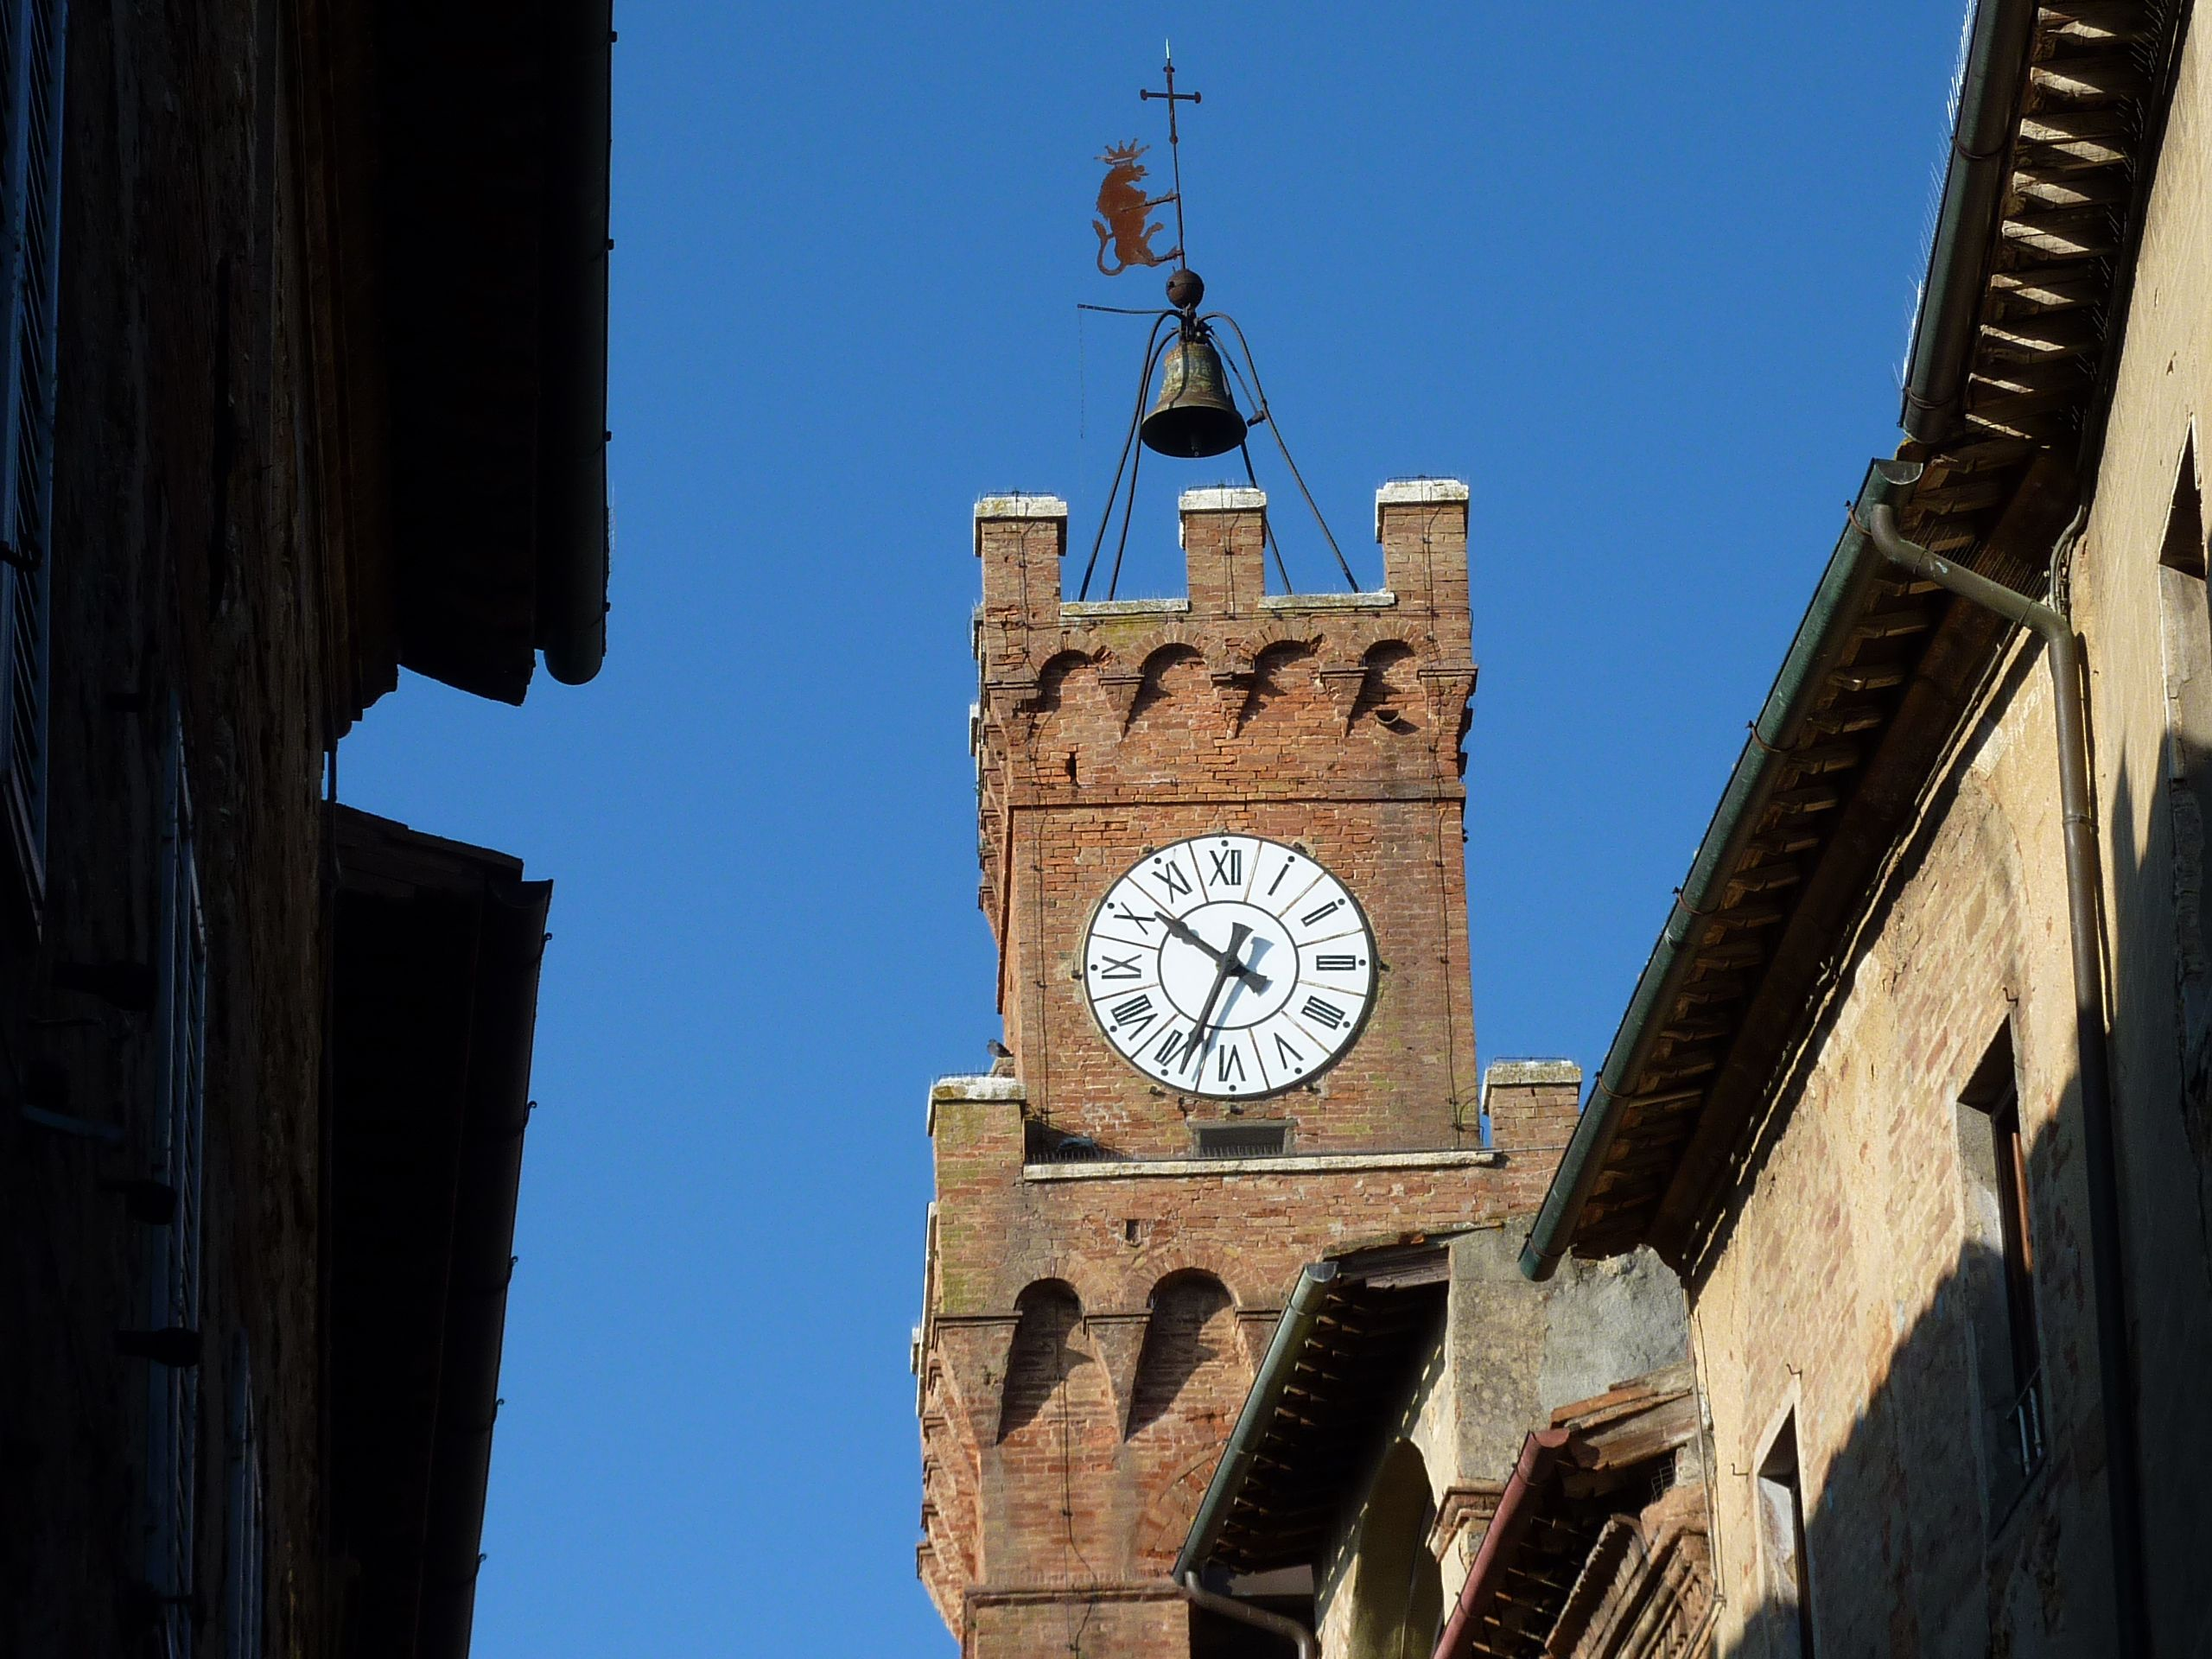 The Clock-tower of the Town-hall of Pienza